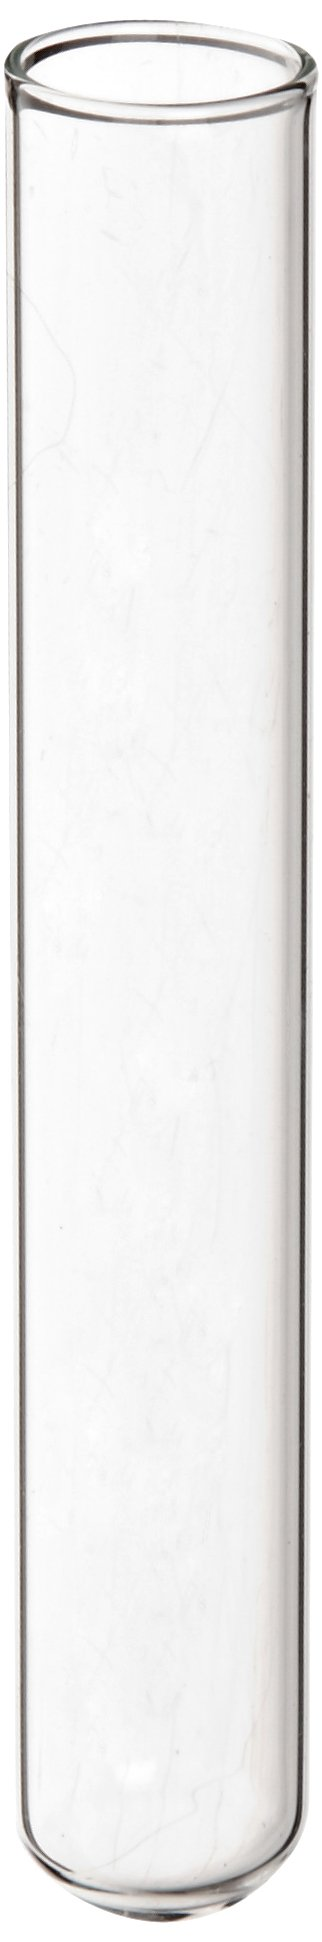 Kimble-Chase 73500-1275 N-51A Borosilicate Glass Culture/Test Tube, with Rim Top (Case of 1000)